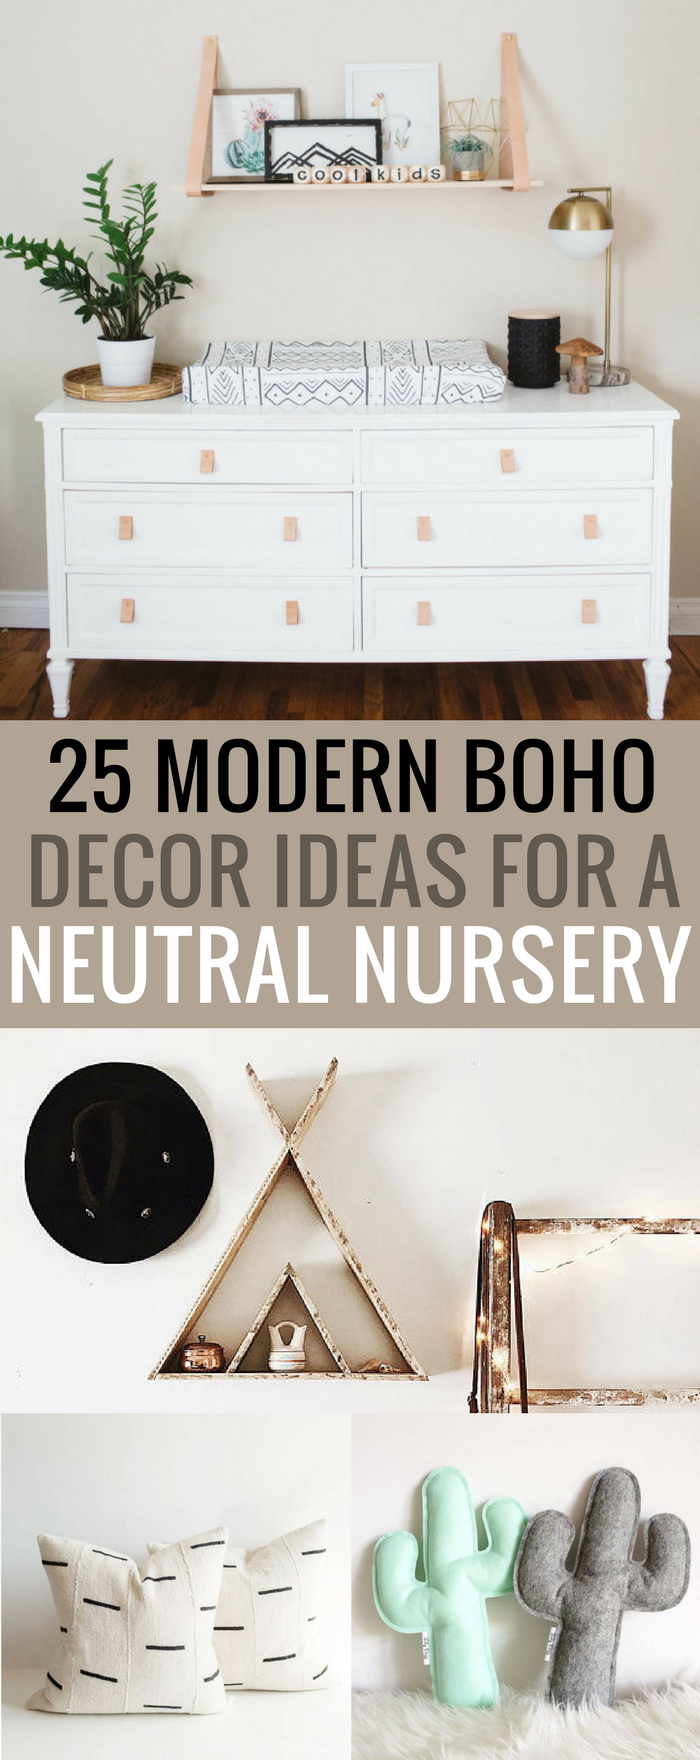 #boho #nursery #newmom 25 Modern Boho Decor Ideas for Your Baby's Nursery